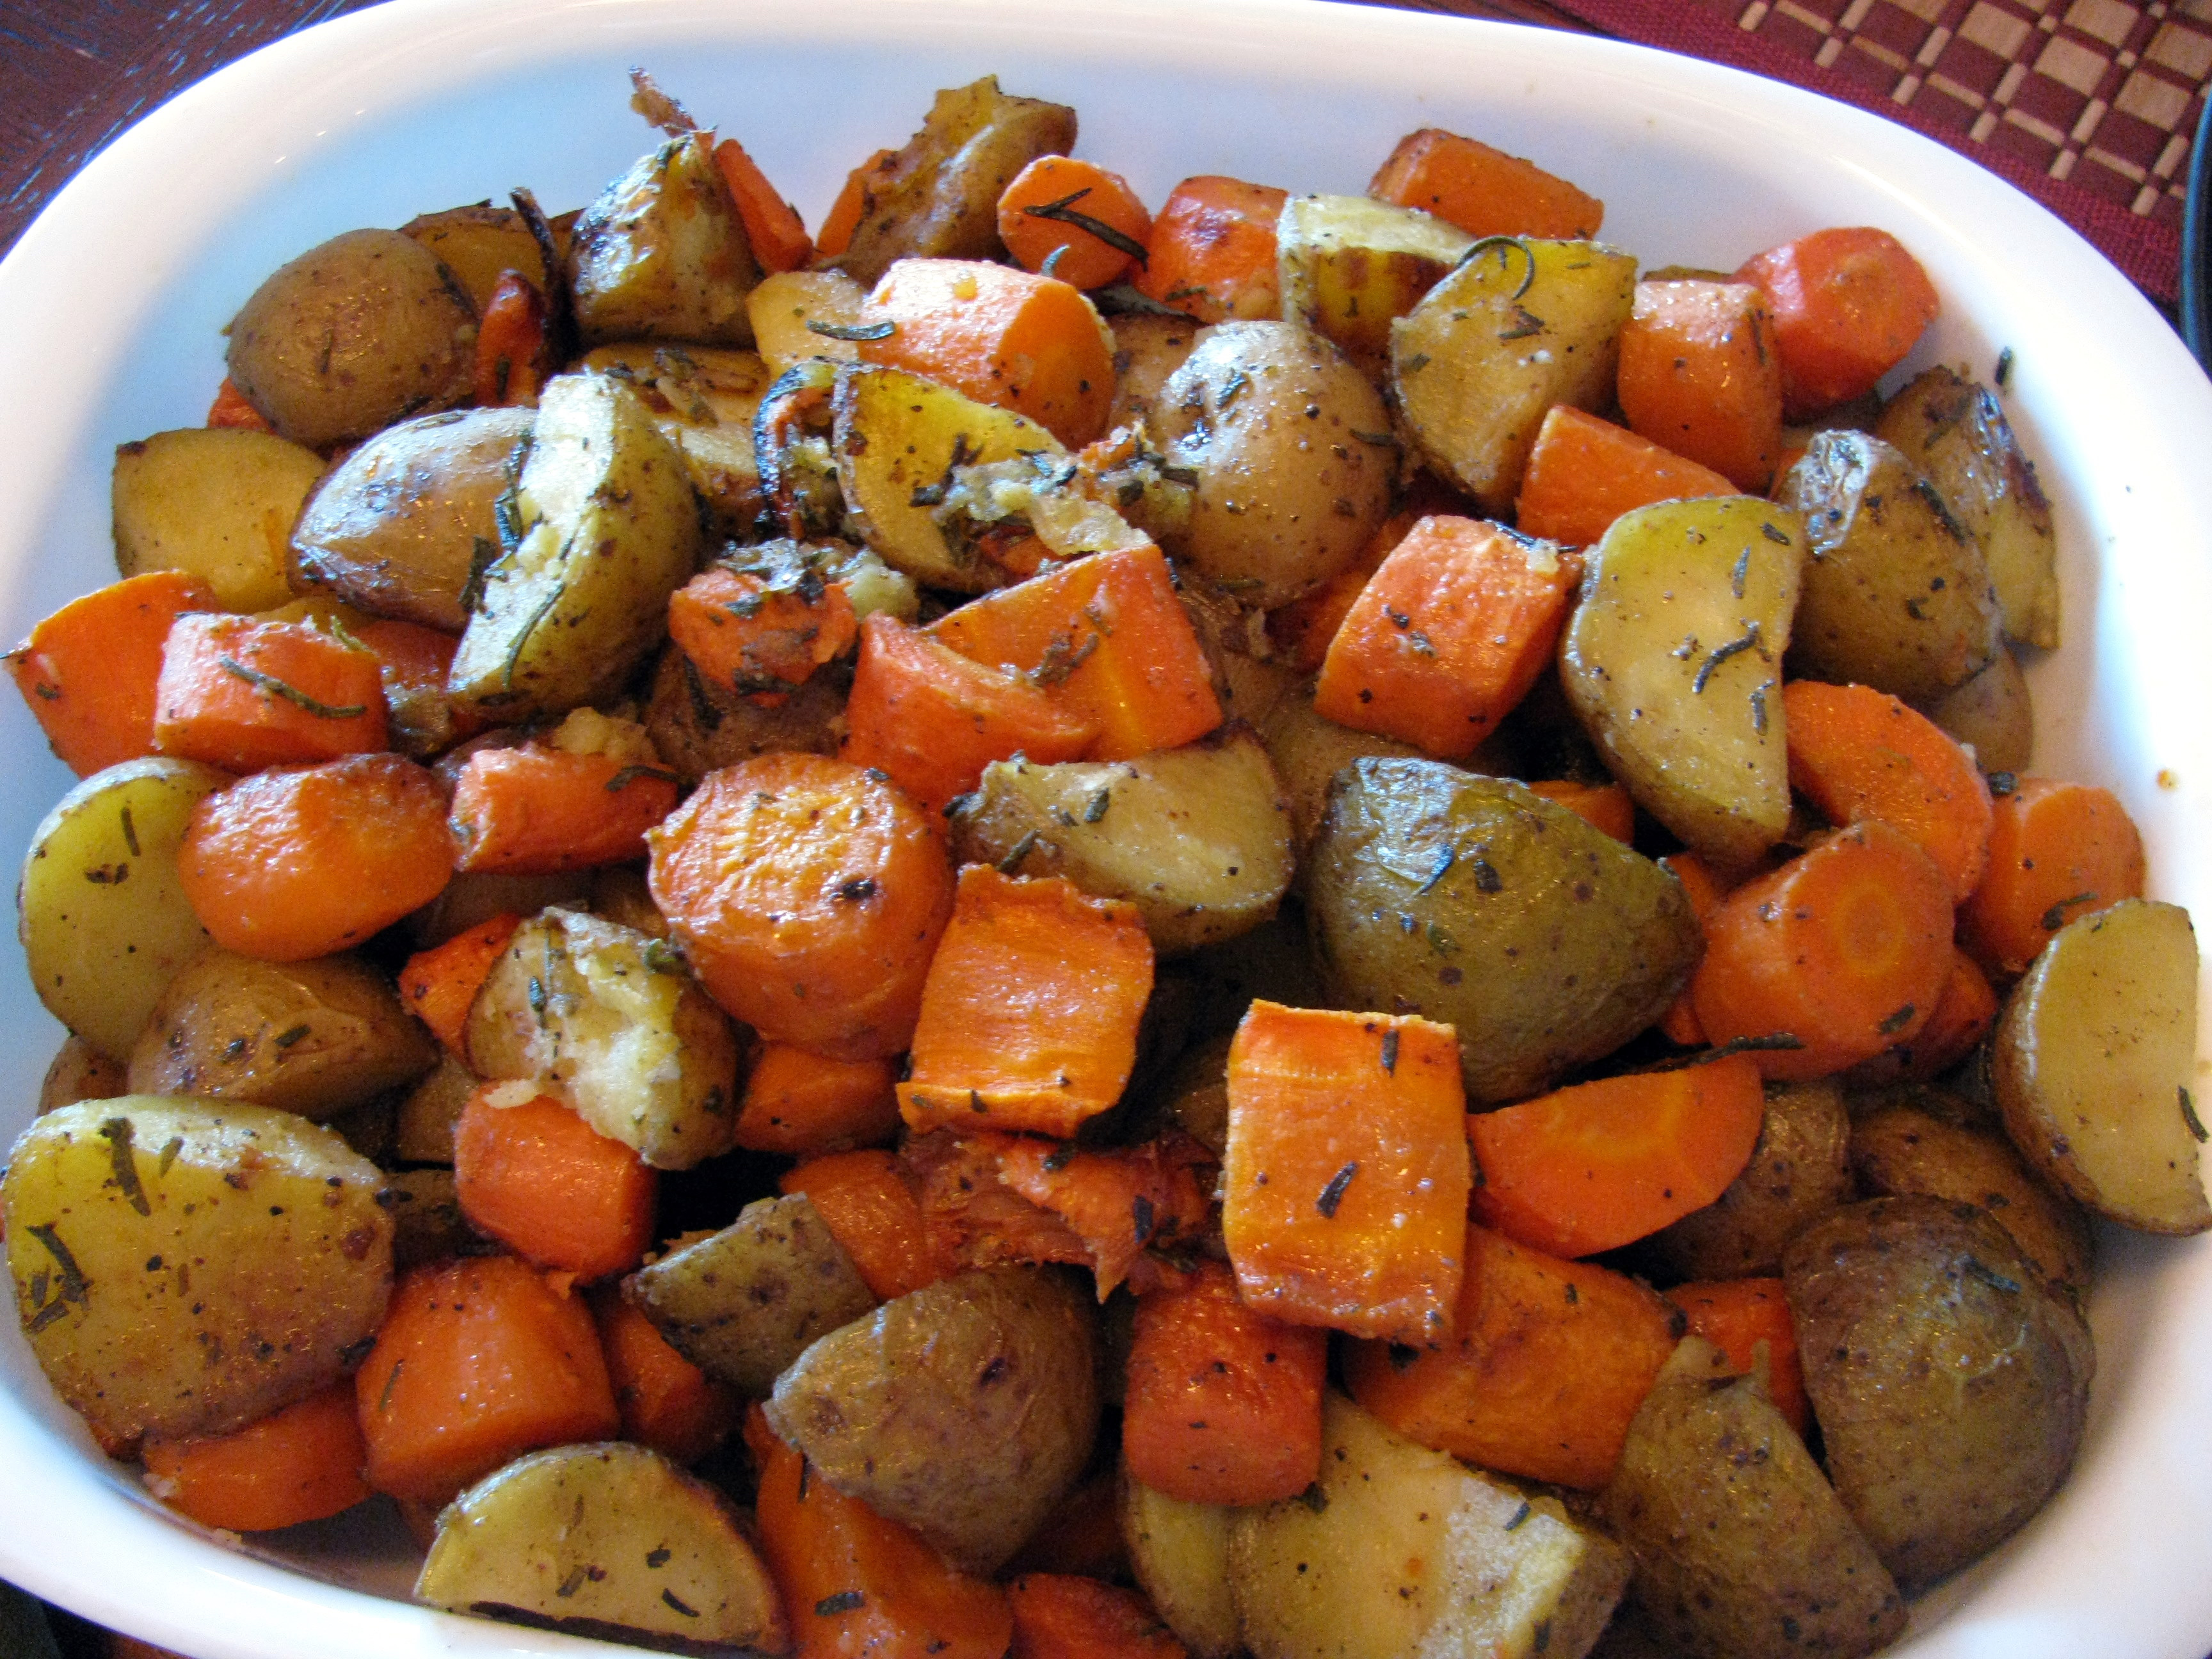 Roasted Sweet Potatoes And Carrots  Roasted Rosemary Potatoes and Carrots